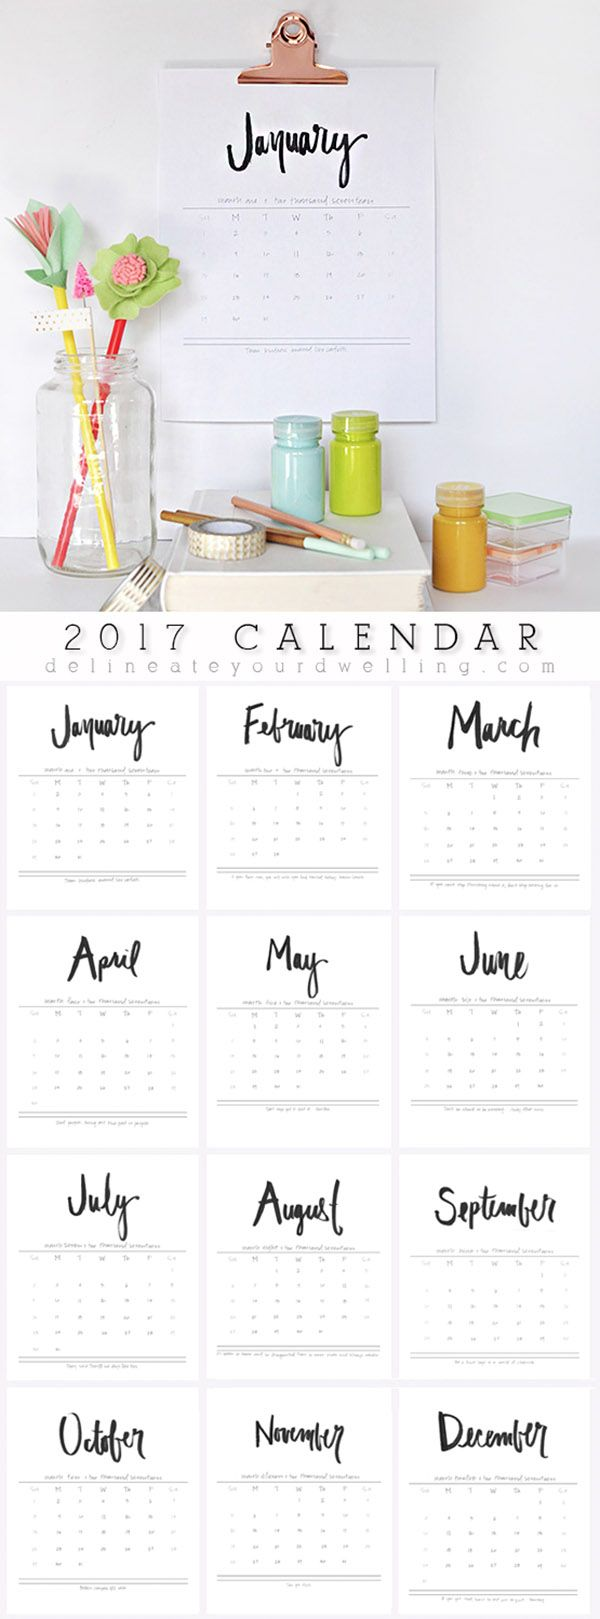 17 Best ideas about Printable Calendars on Pinterest | Calendar ...